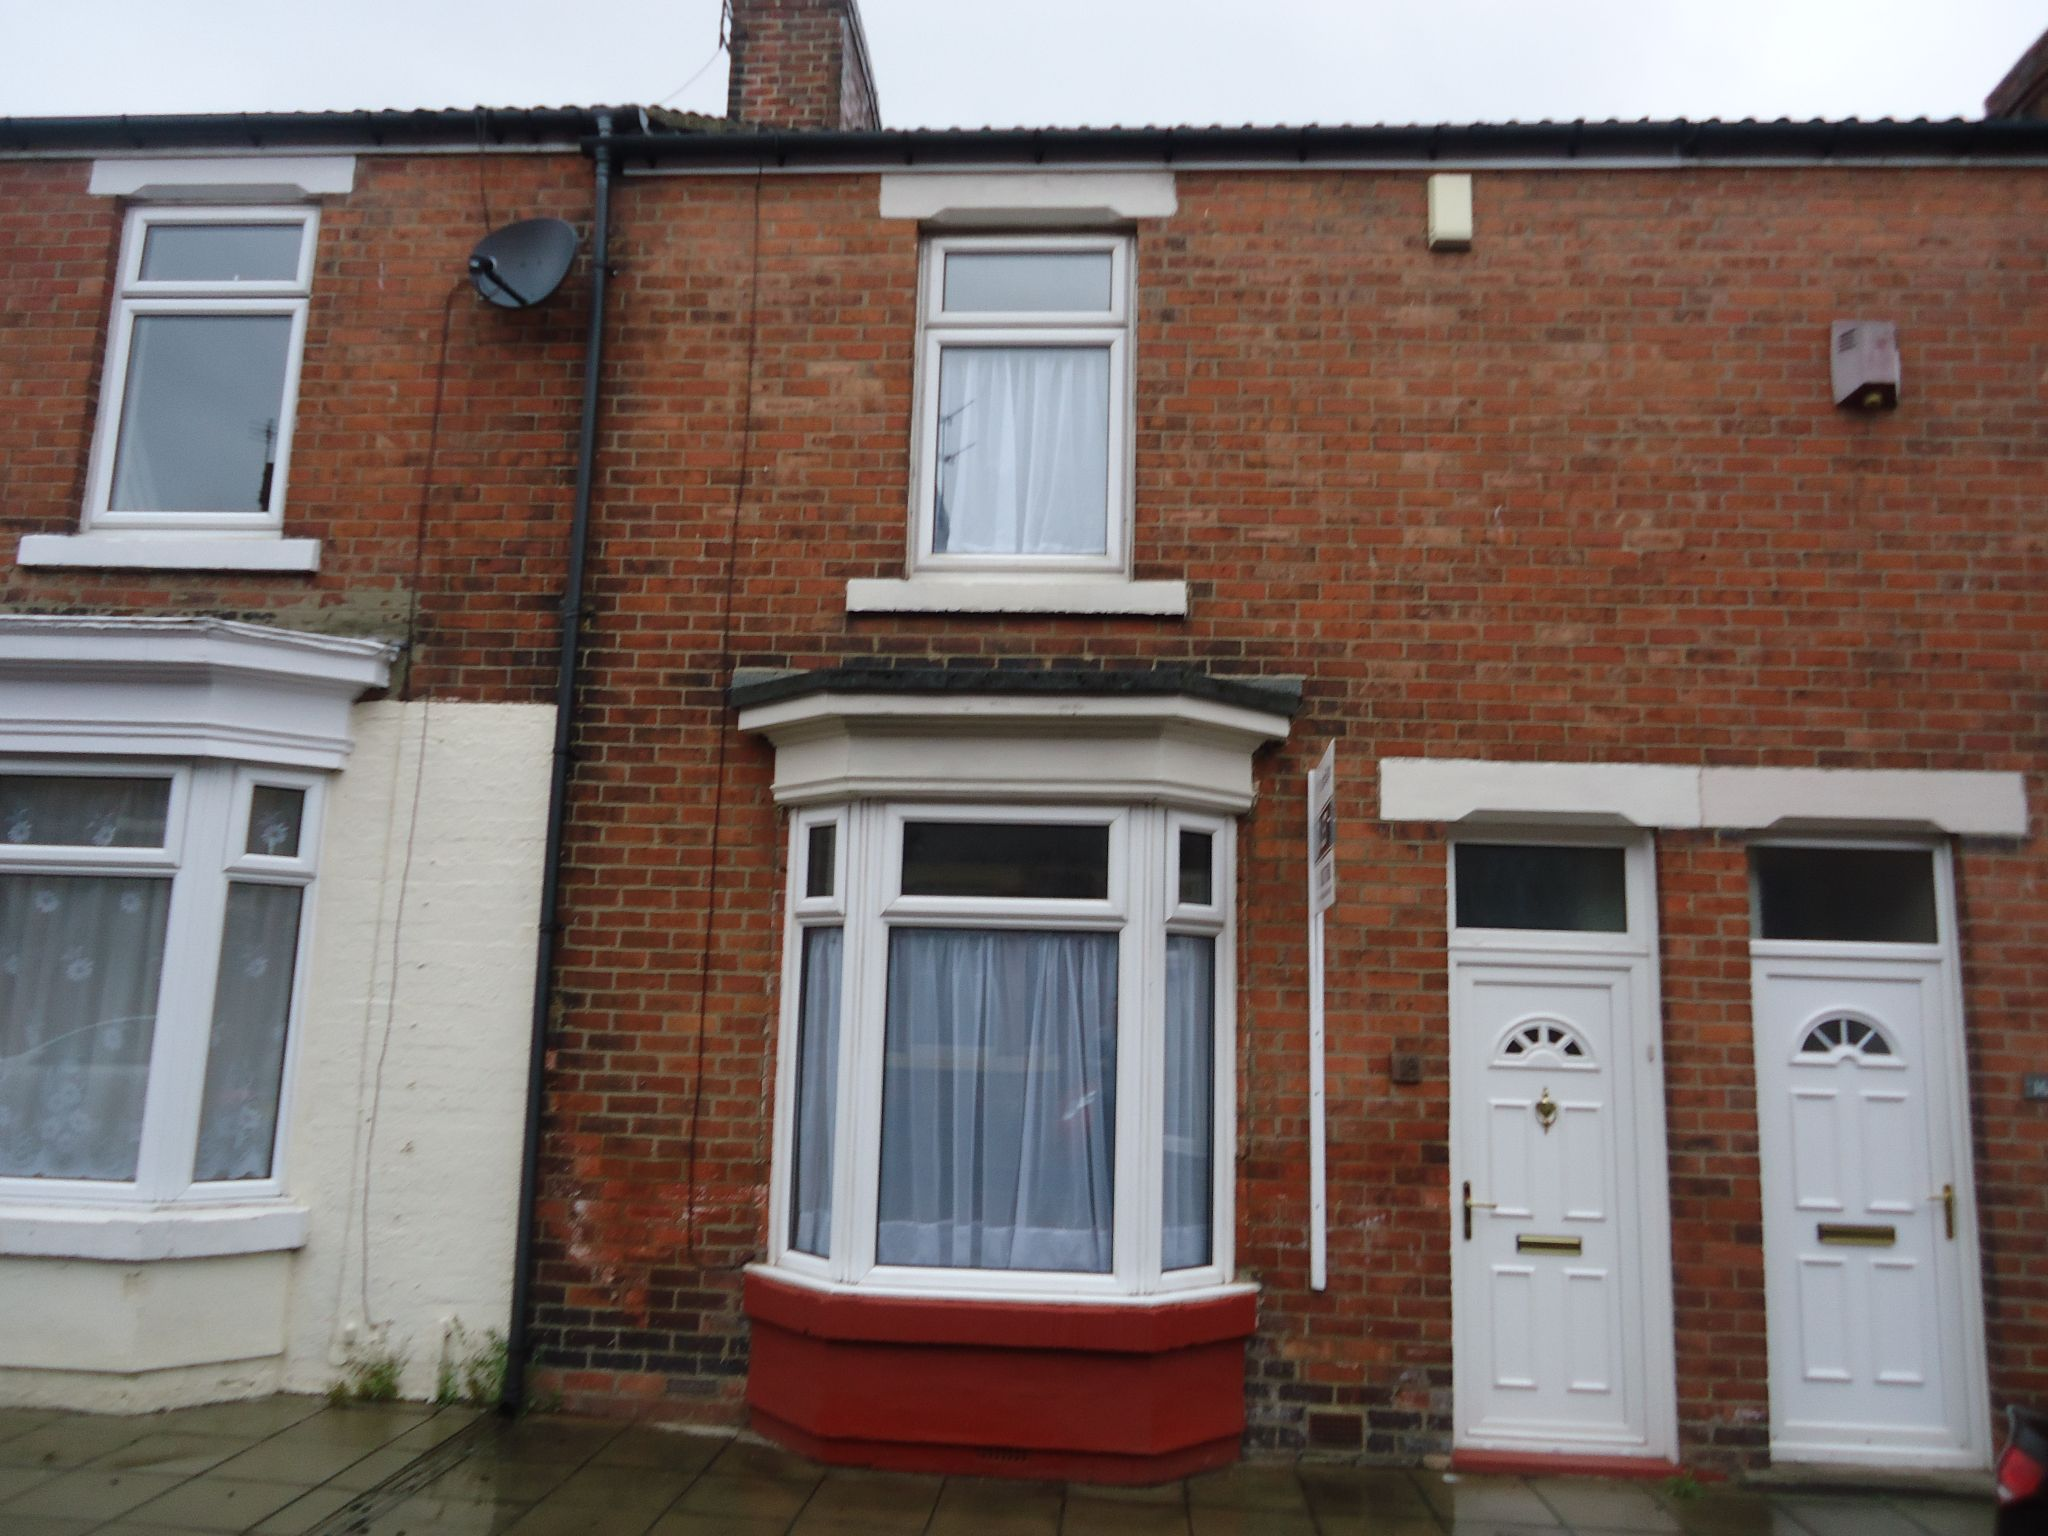 2 bedroom mid terraced house To Let in Shildon - Photograph 1.